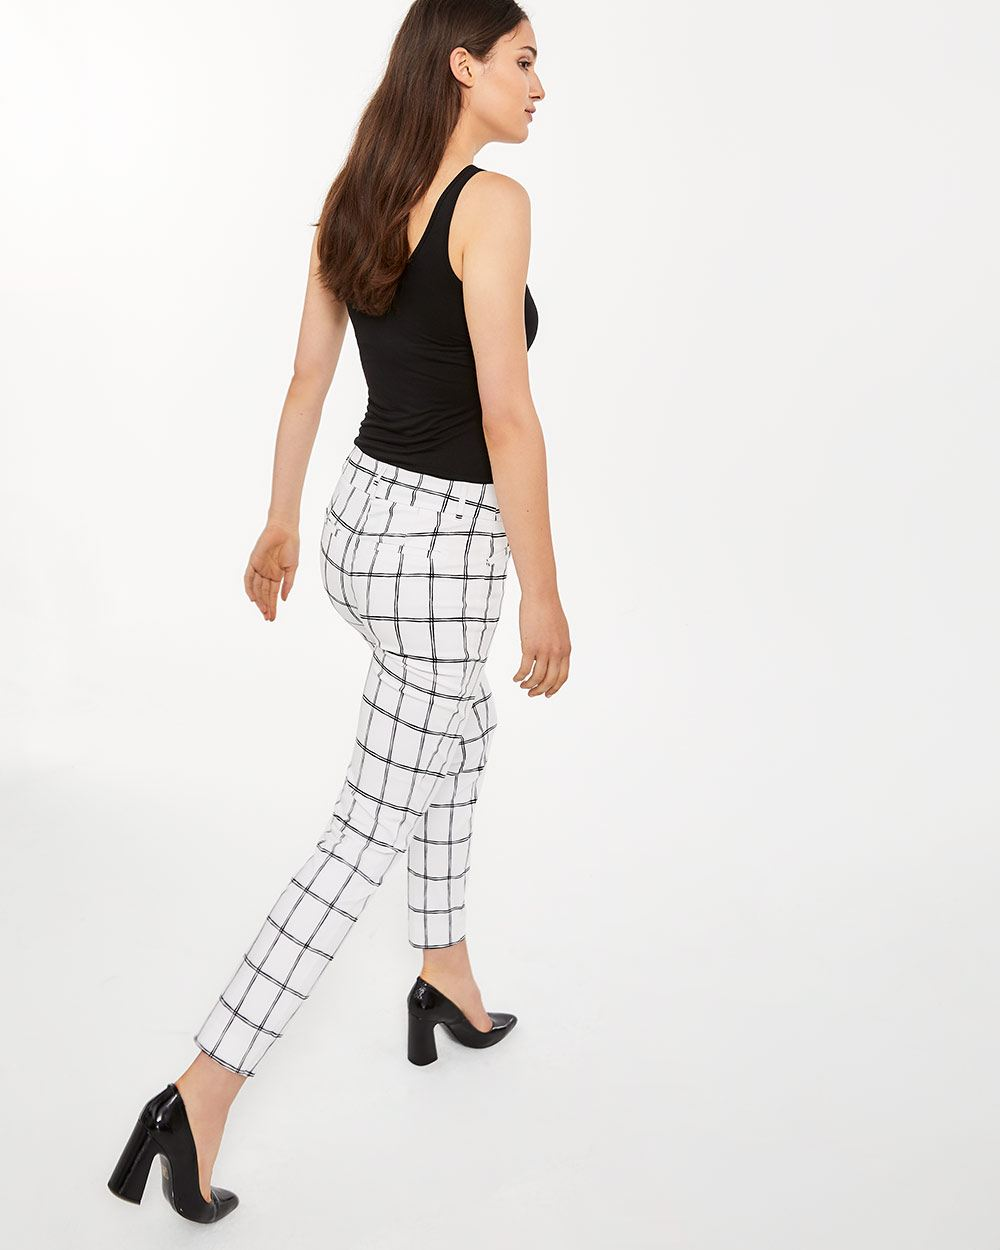 The Tall Iconic Skinny Checkered Ankle Pants